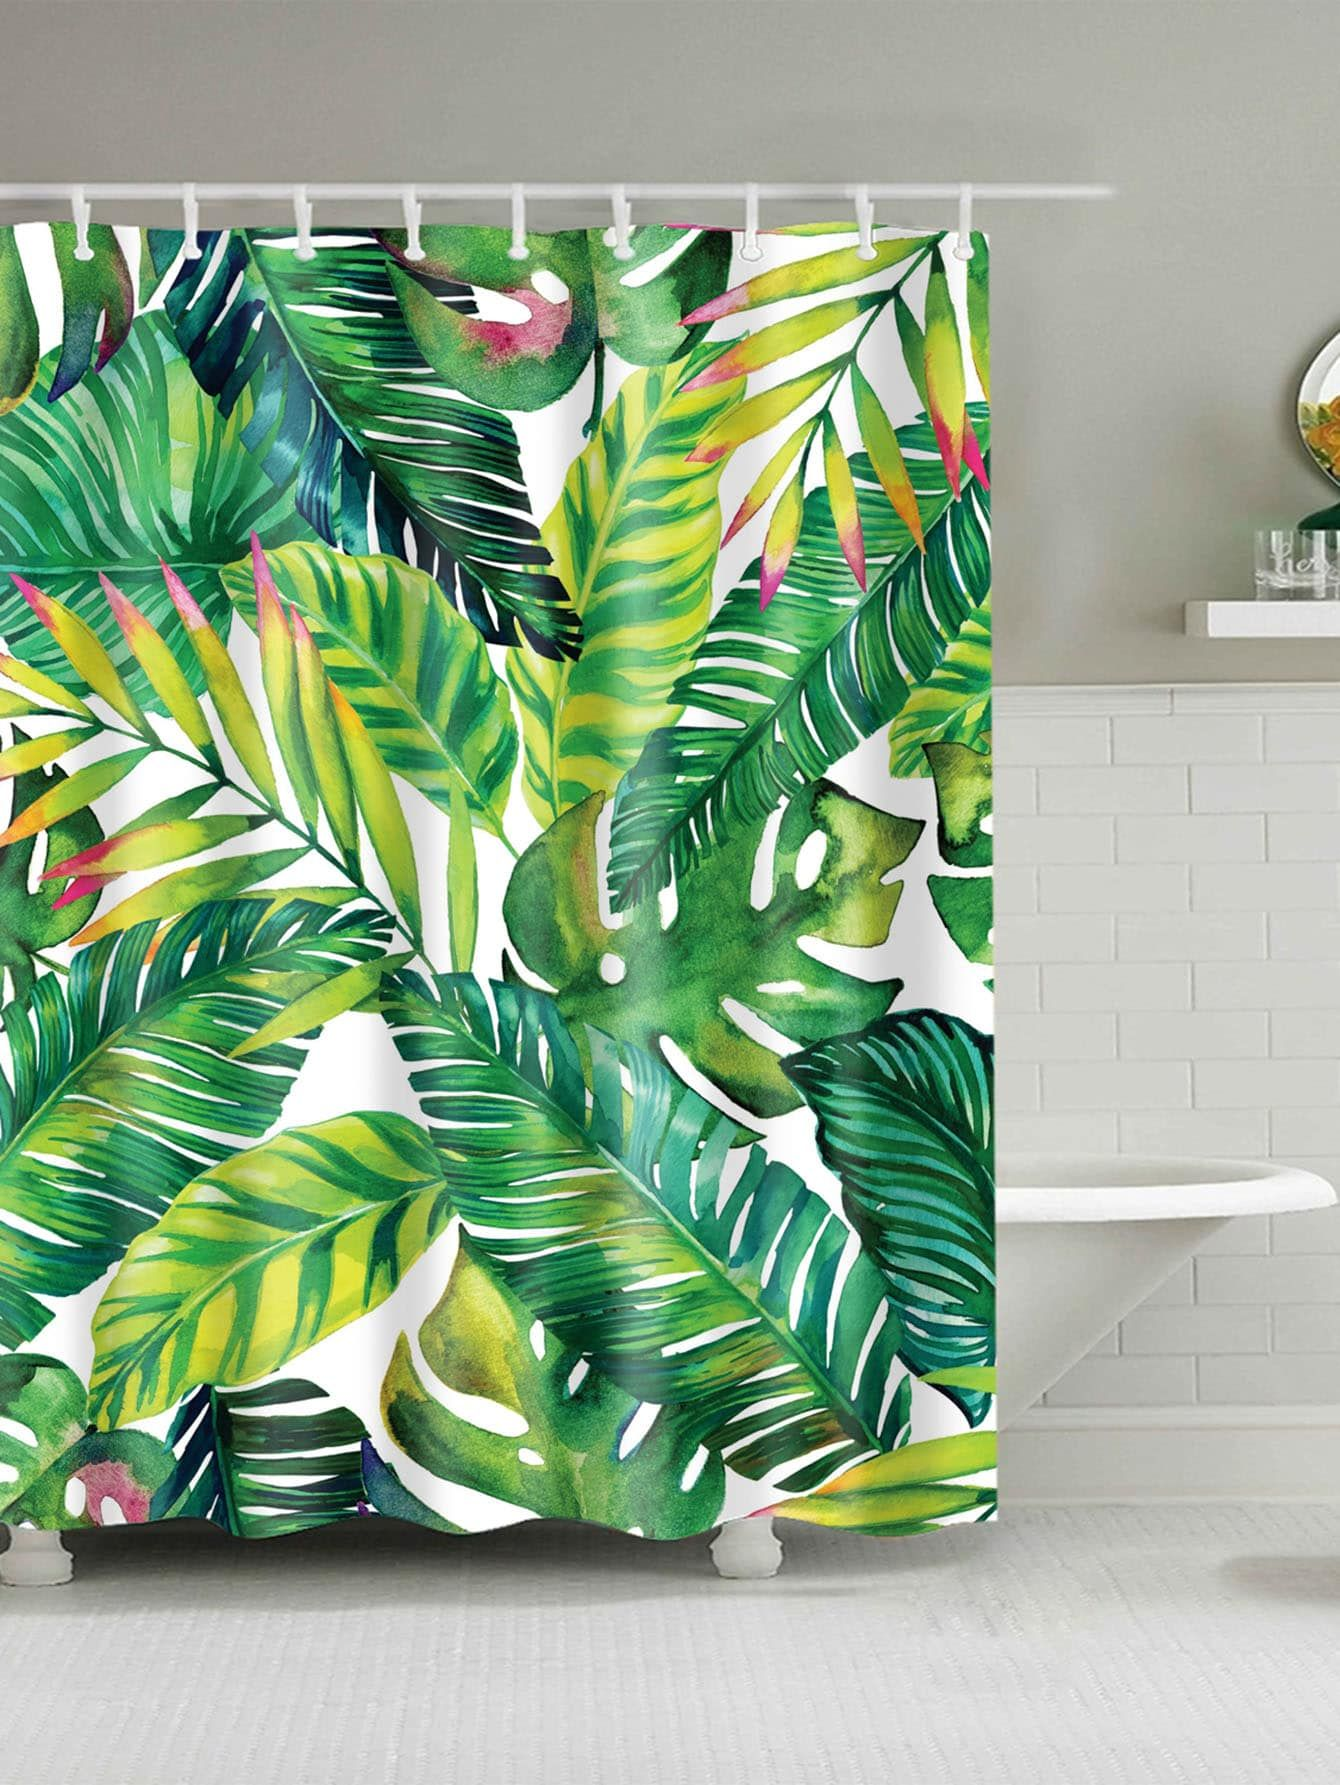 Tropical Leaf Print Shower Curtain With 12pcs Hook Ad Print Shower Tropical Banana Leaf Shower Curtain Fabric Shower Curtains Printed Shower Curtain